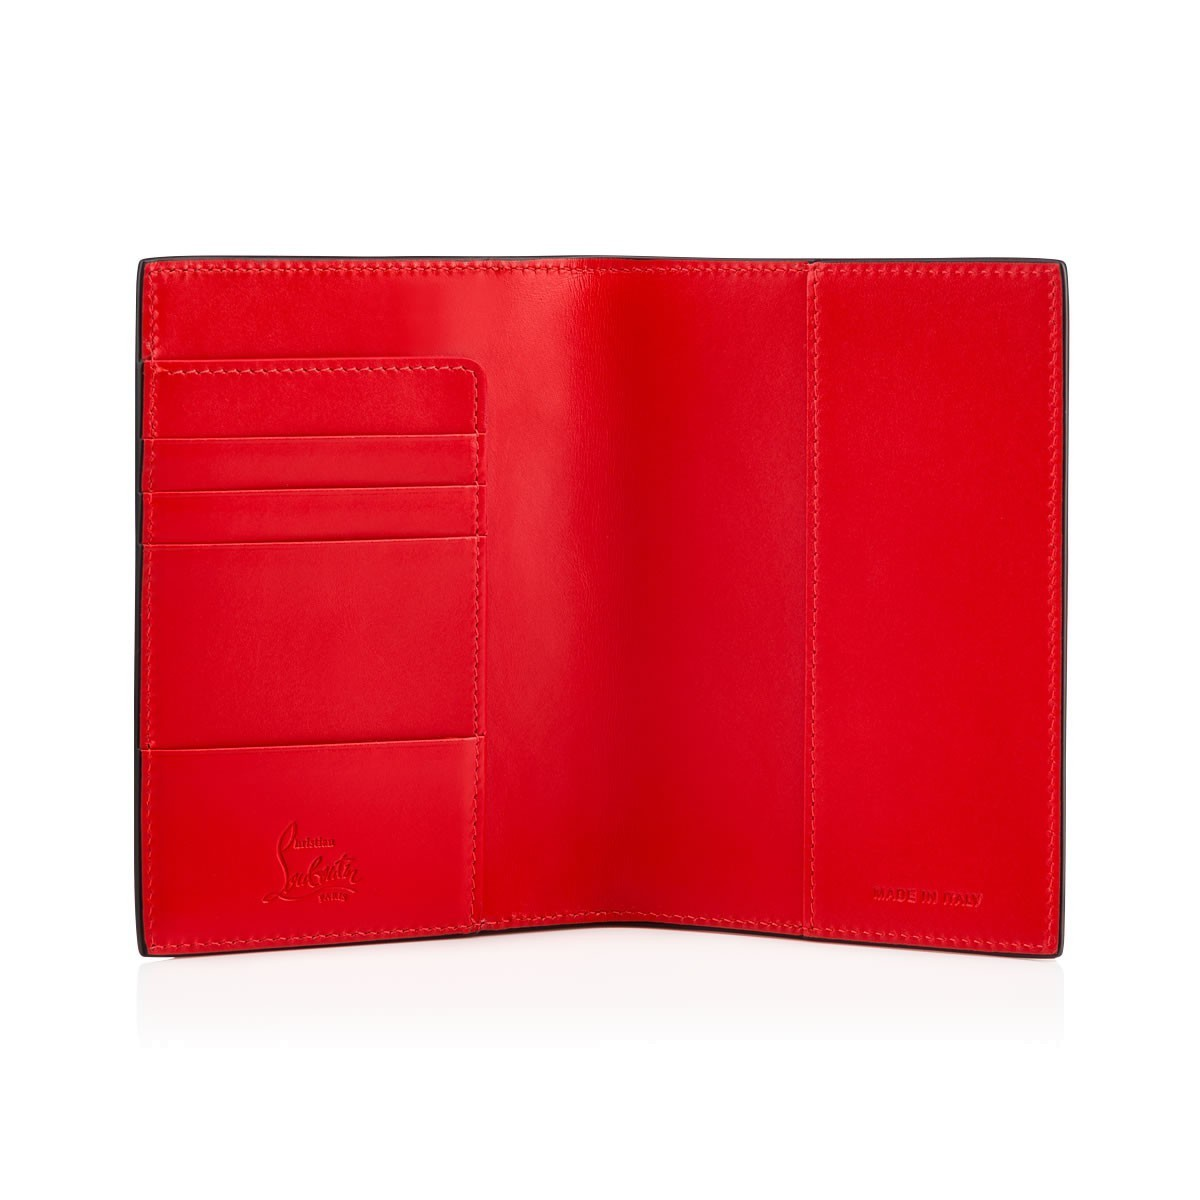 【Christian Louboutin】Loubipass Passport Holder